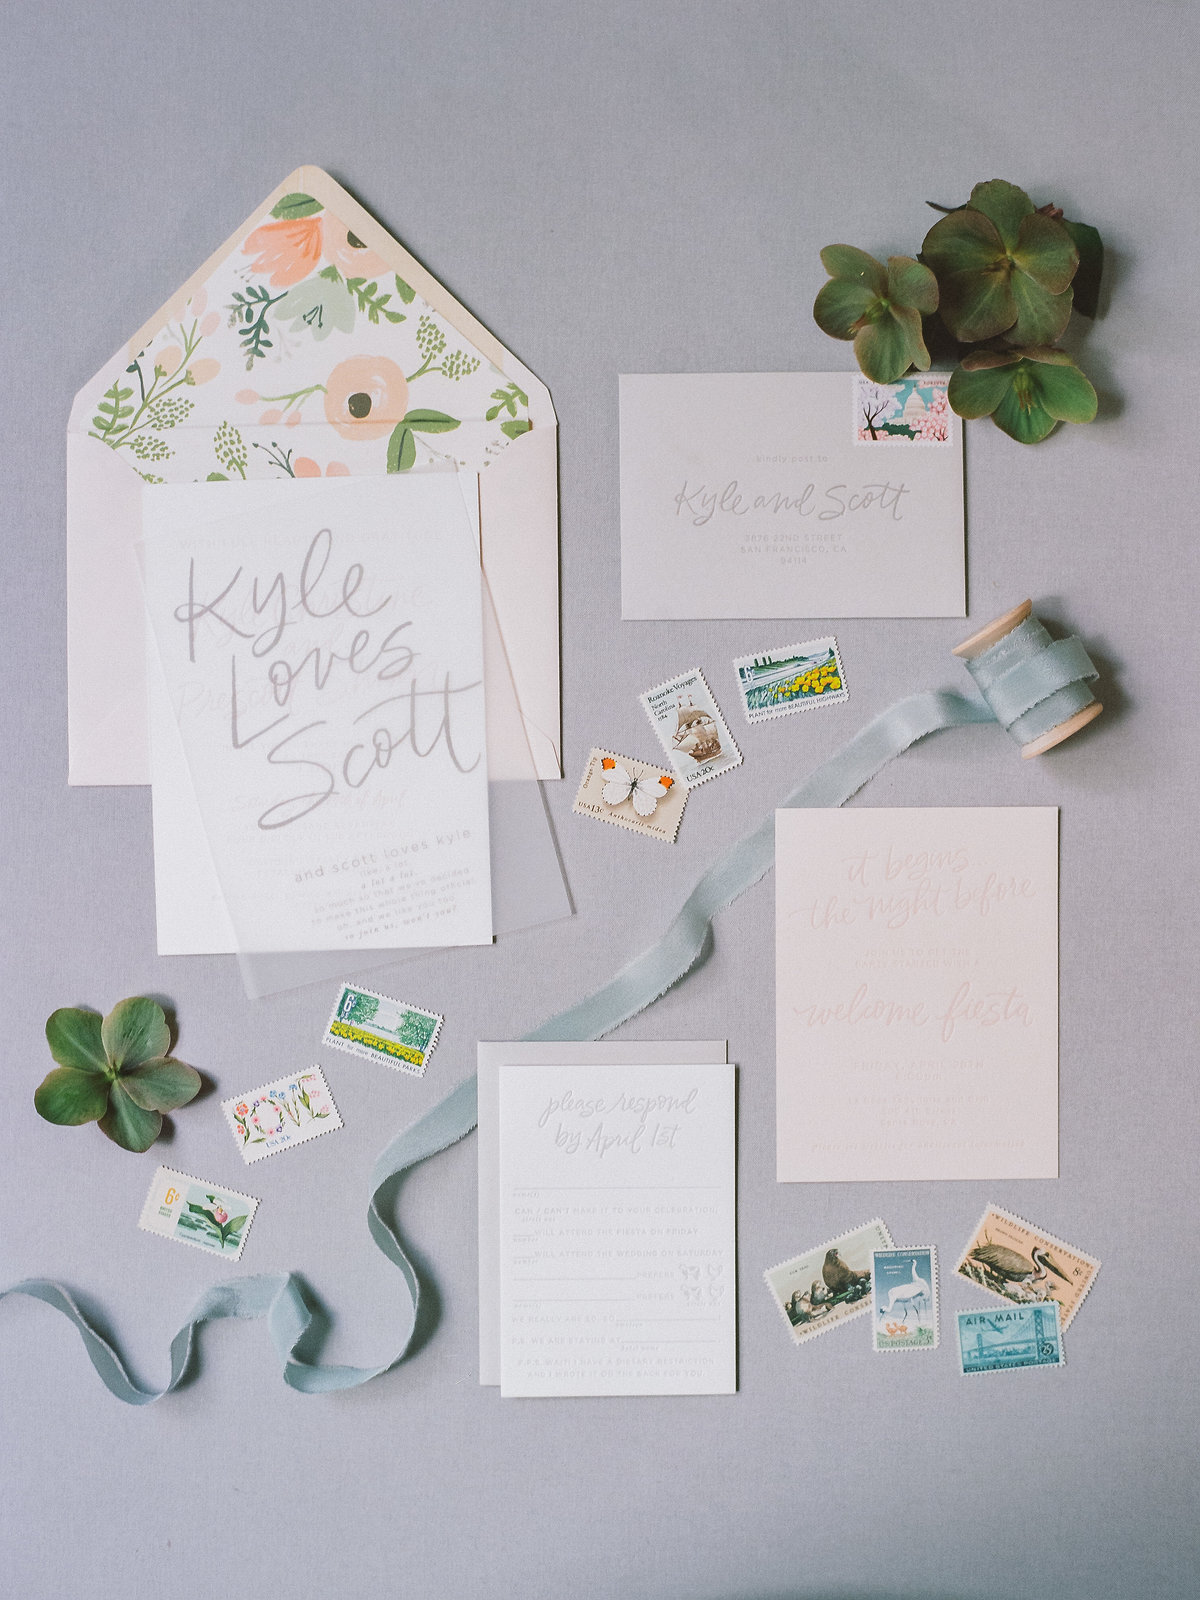 Invitation for wedding by Jenny Schneider Events at Olympia's Valley Estate in Petaluma, California. Photo by Lori Paladino Photography.